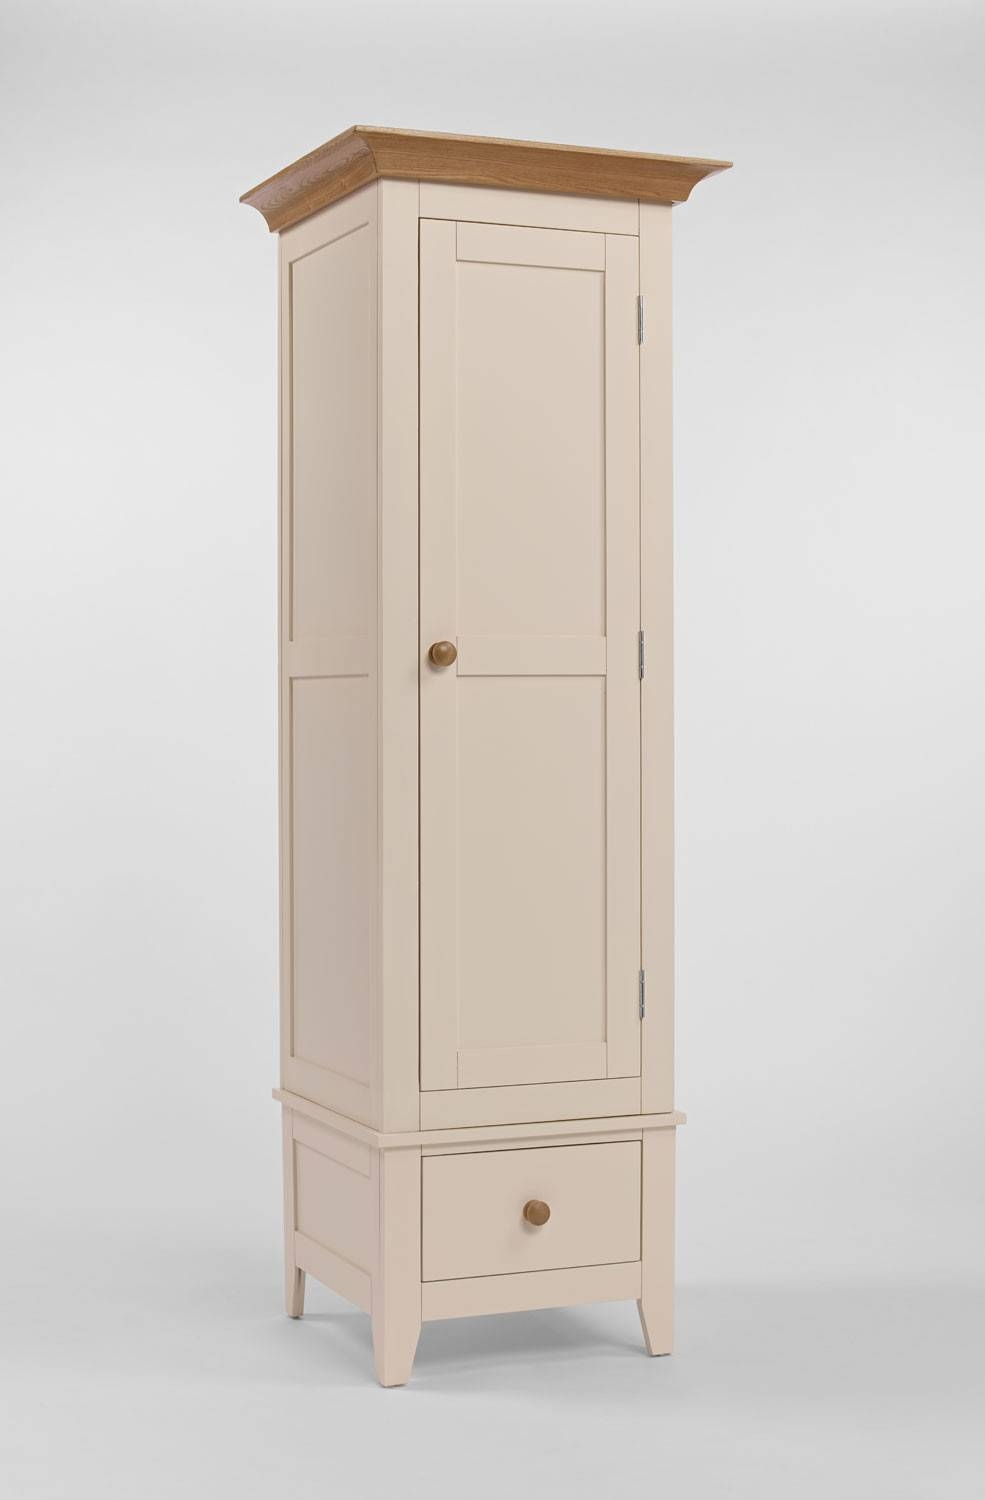 Bedroom Furniture With Regard To Single Oak Wardrobes With Drawers (View 3 of 15)